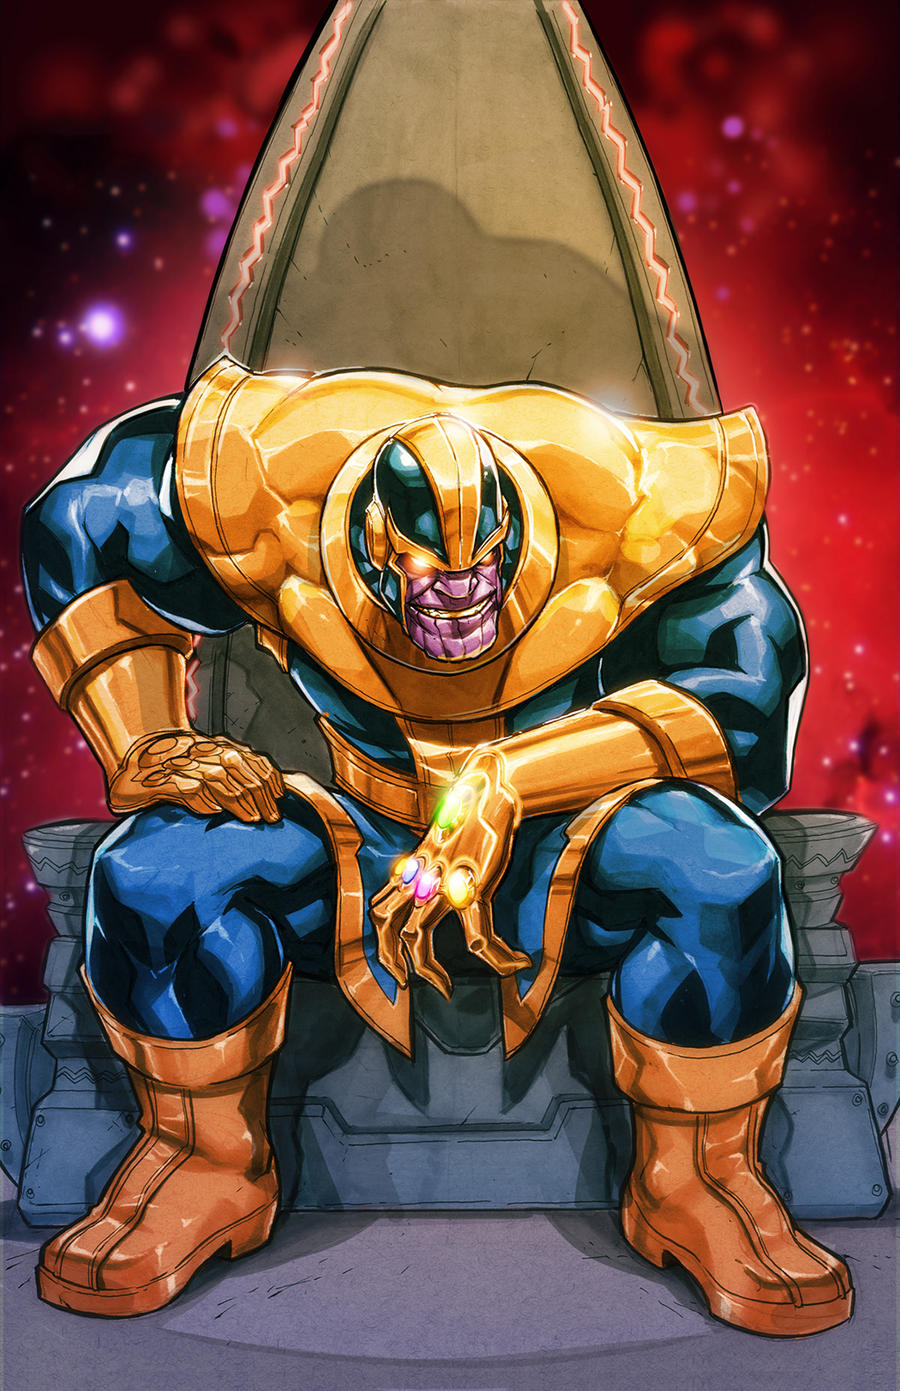 THANOS ON THRONE - Page 97 - Statue Forum